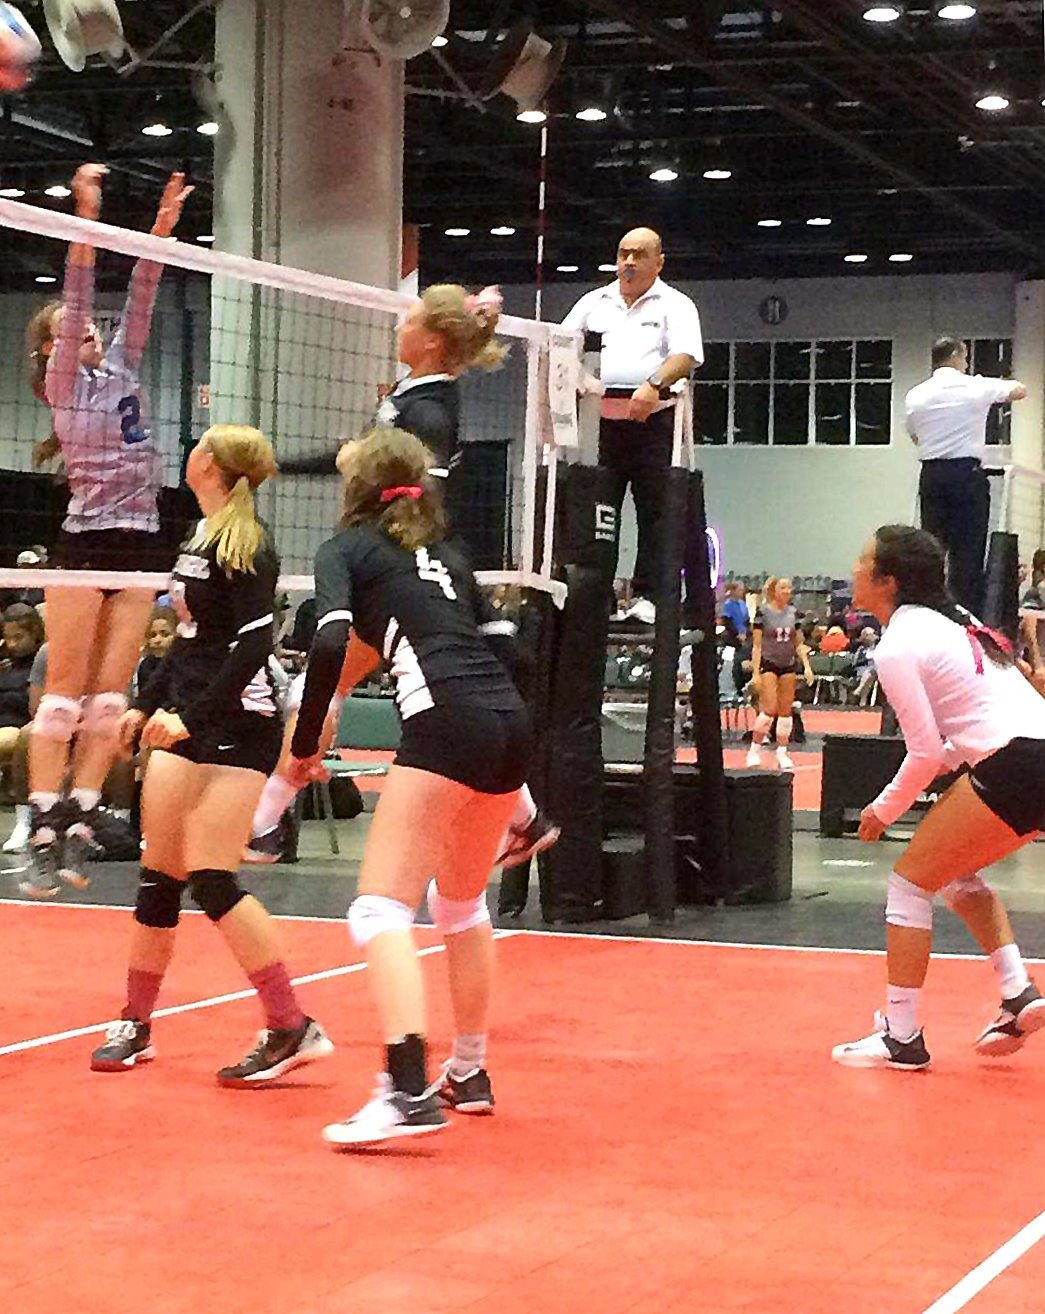 Gold Diggers AAU volleyball team takes on nationals